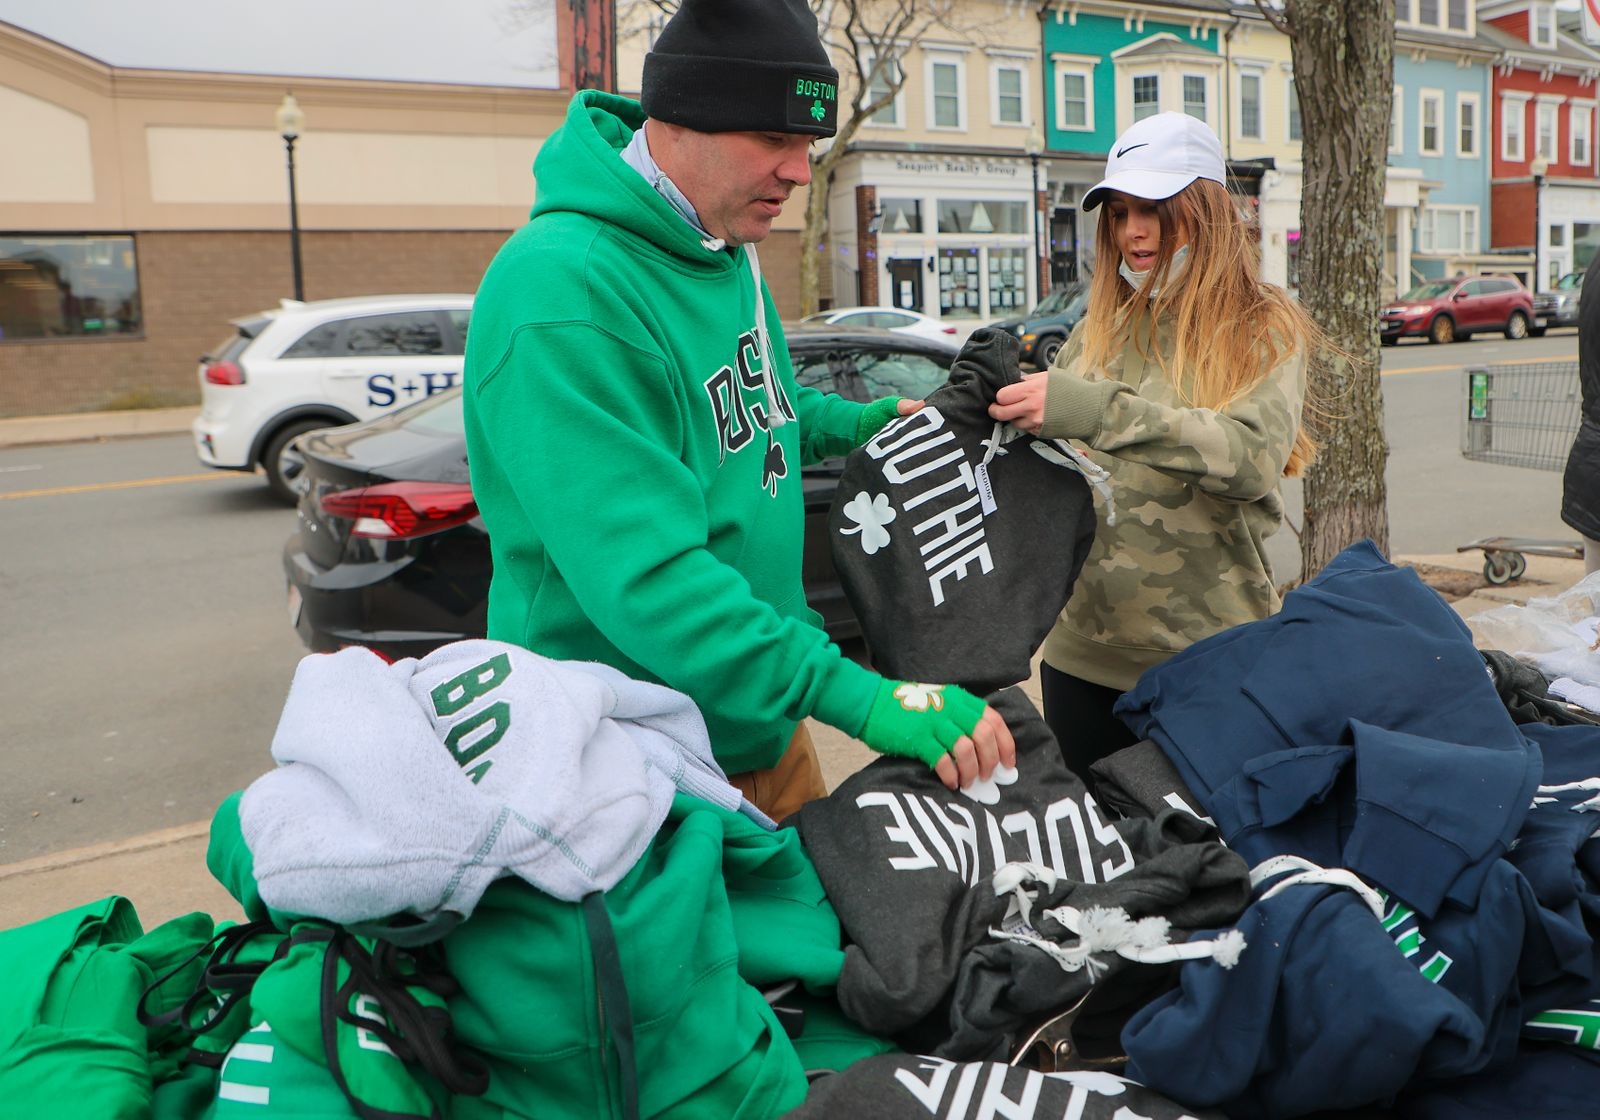 Southie Residents Celebrate During Cancelled St. Patrick's Day Parade